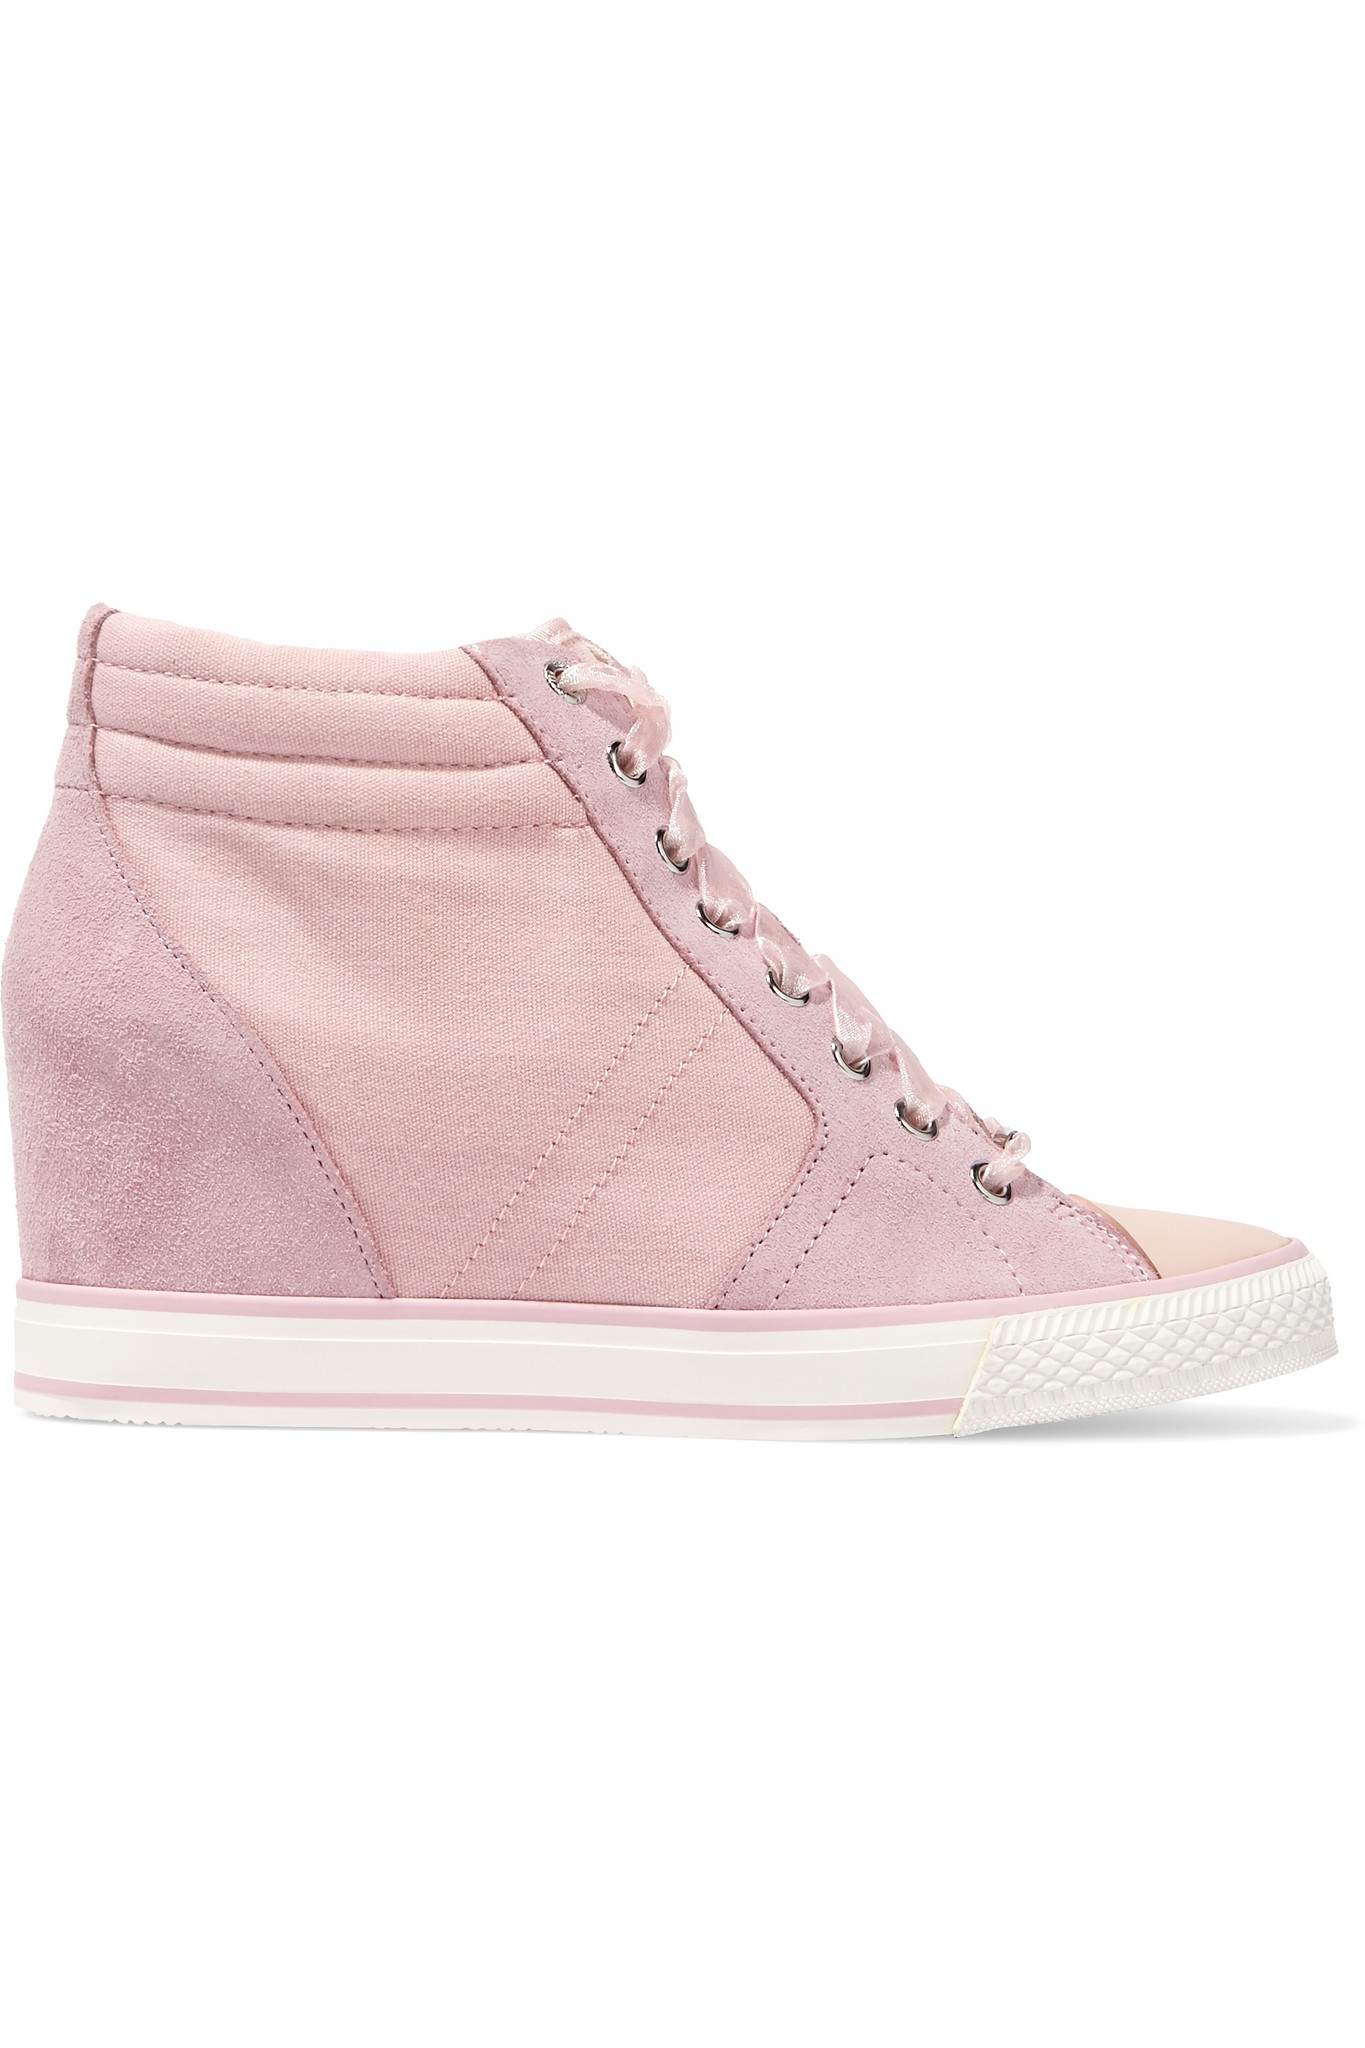 DKNY Cindy Suede And Canvas Wedge Sneakers in Pastel Pink ...